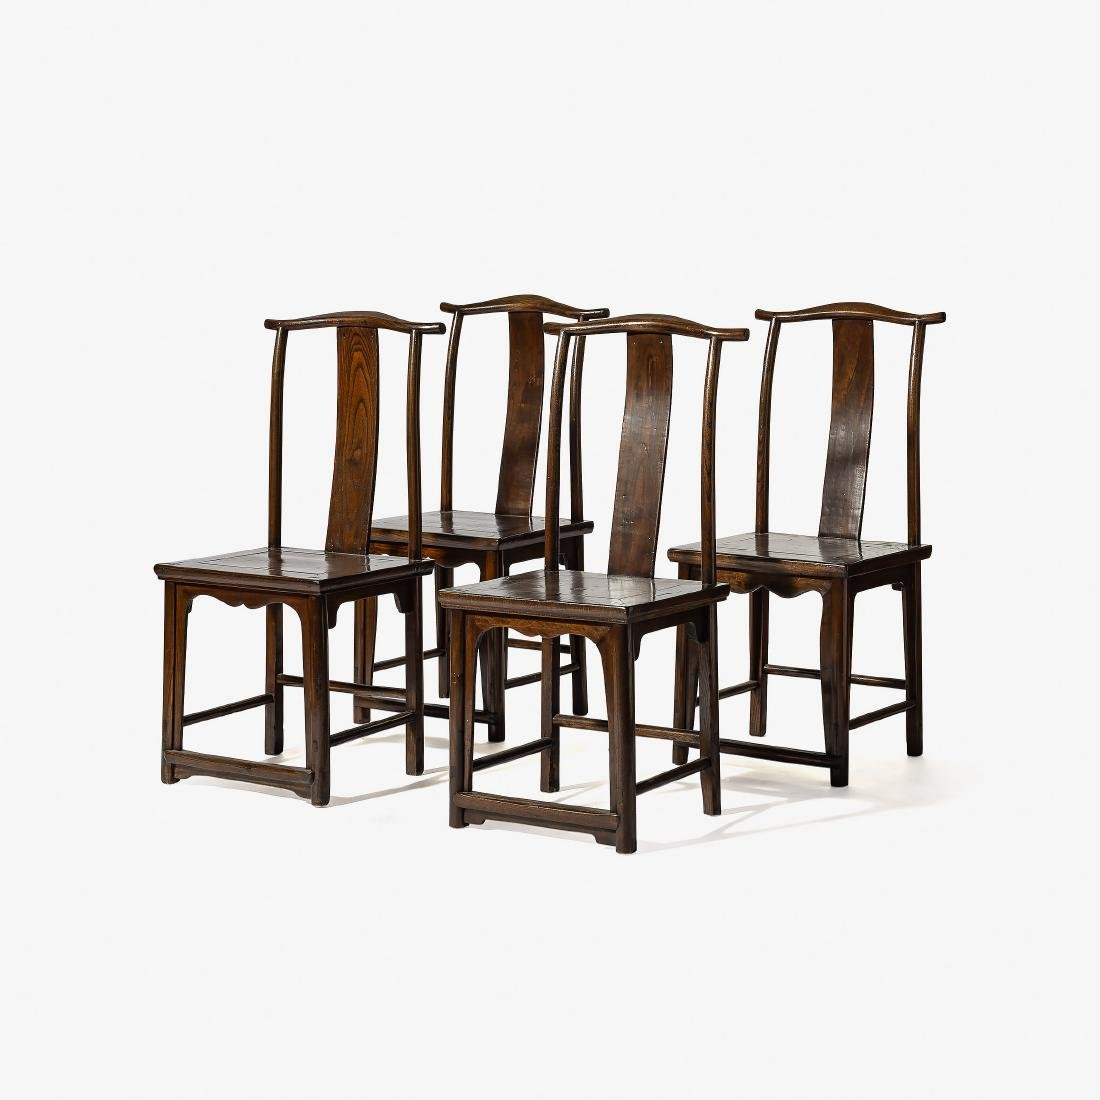 A Set Of Four Chinese Wooden U0027officialu0027s Hatu0027 Chairs